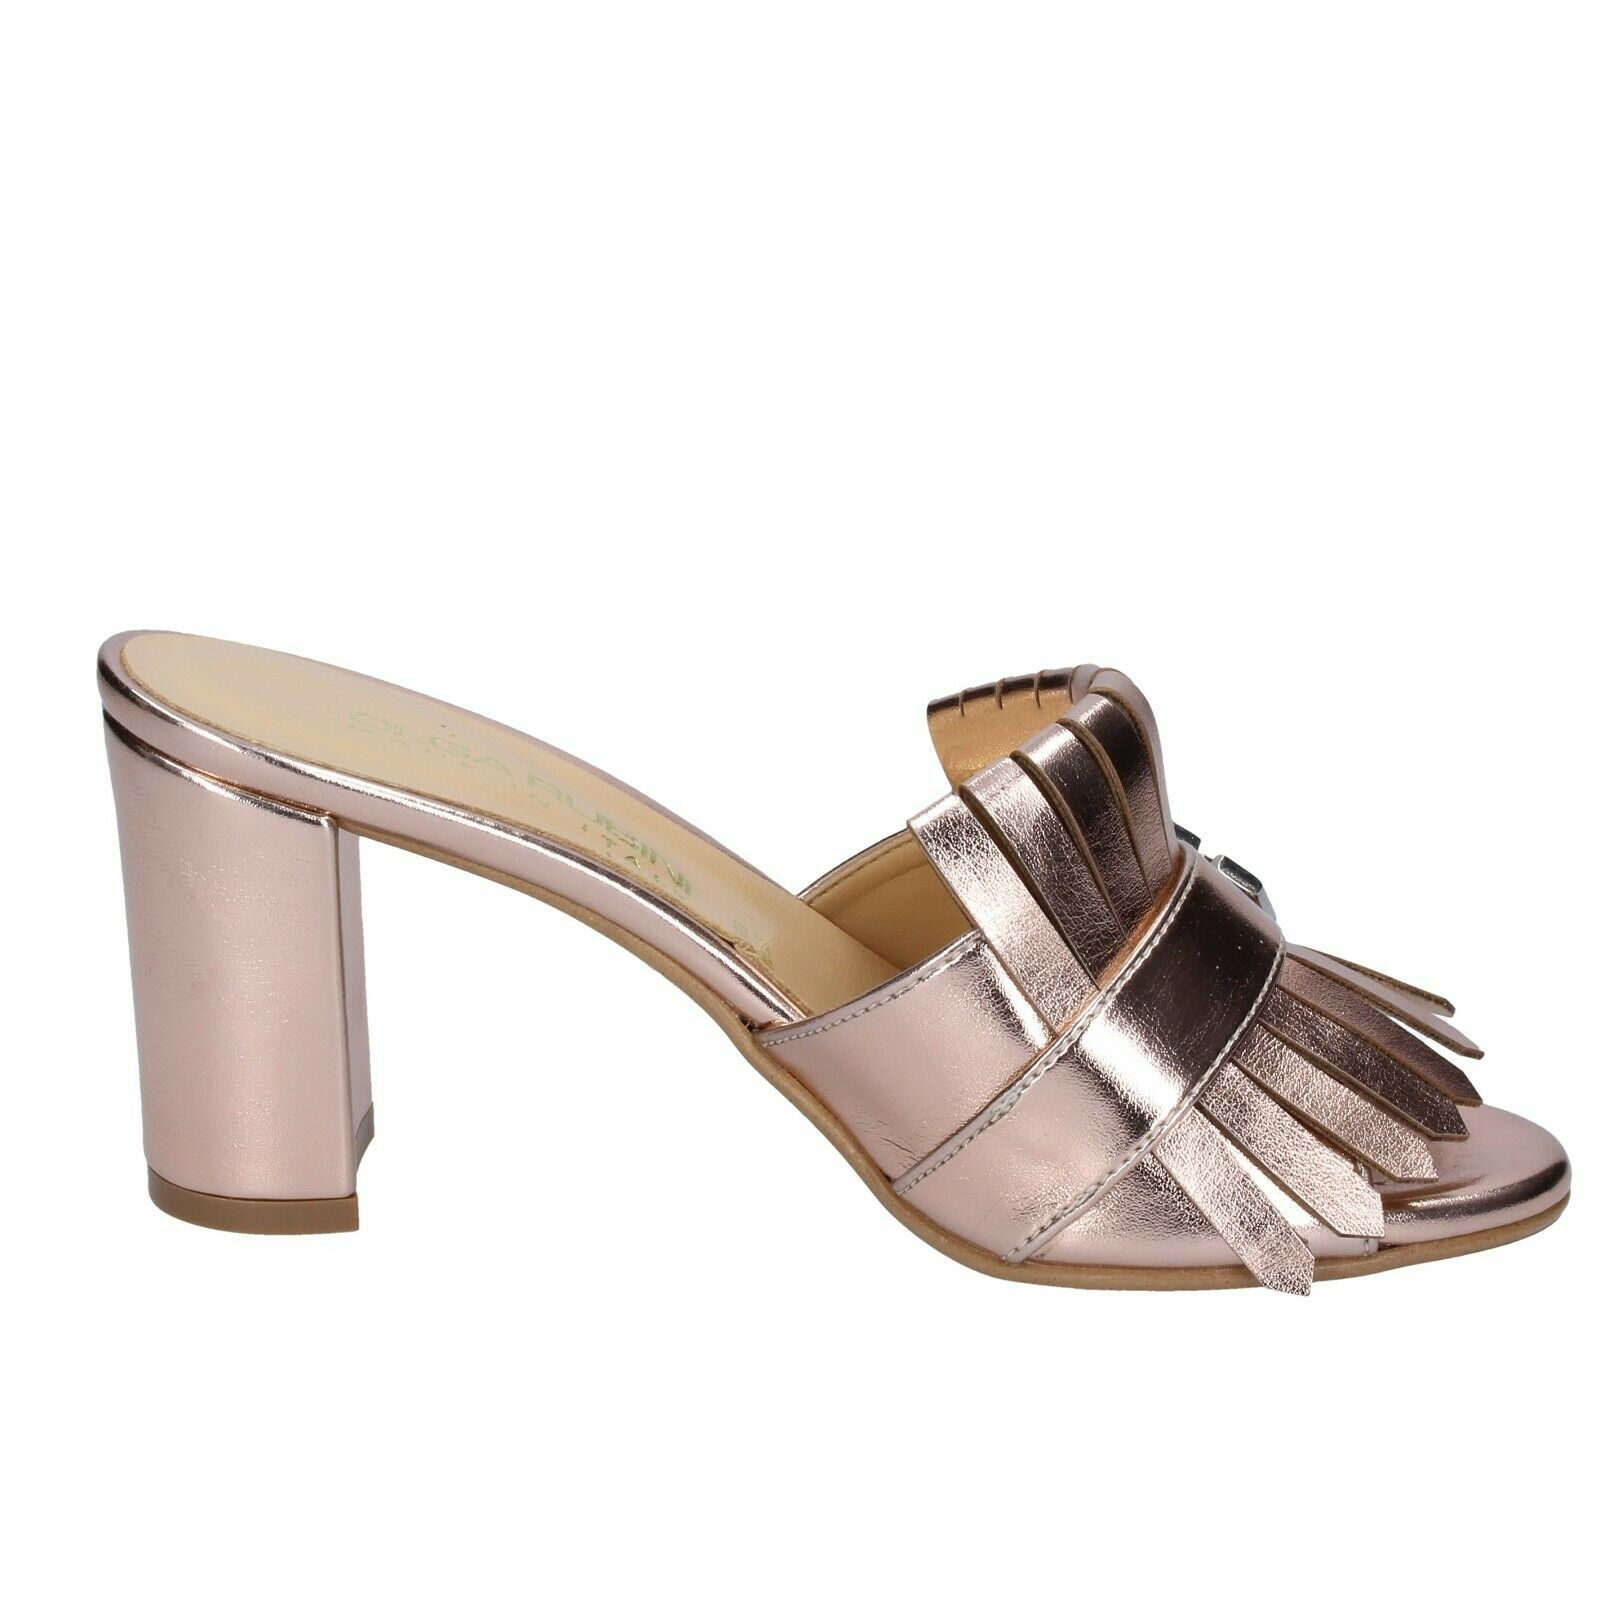 new product ba46a 4dc4e ... Donna scarpe OLGA RUBINI RUBINI RUBINI 5 (EU 35) sandals rosa leather  BS371 81fe1b ...